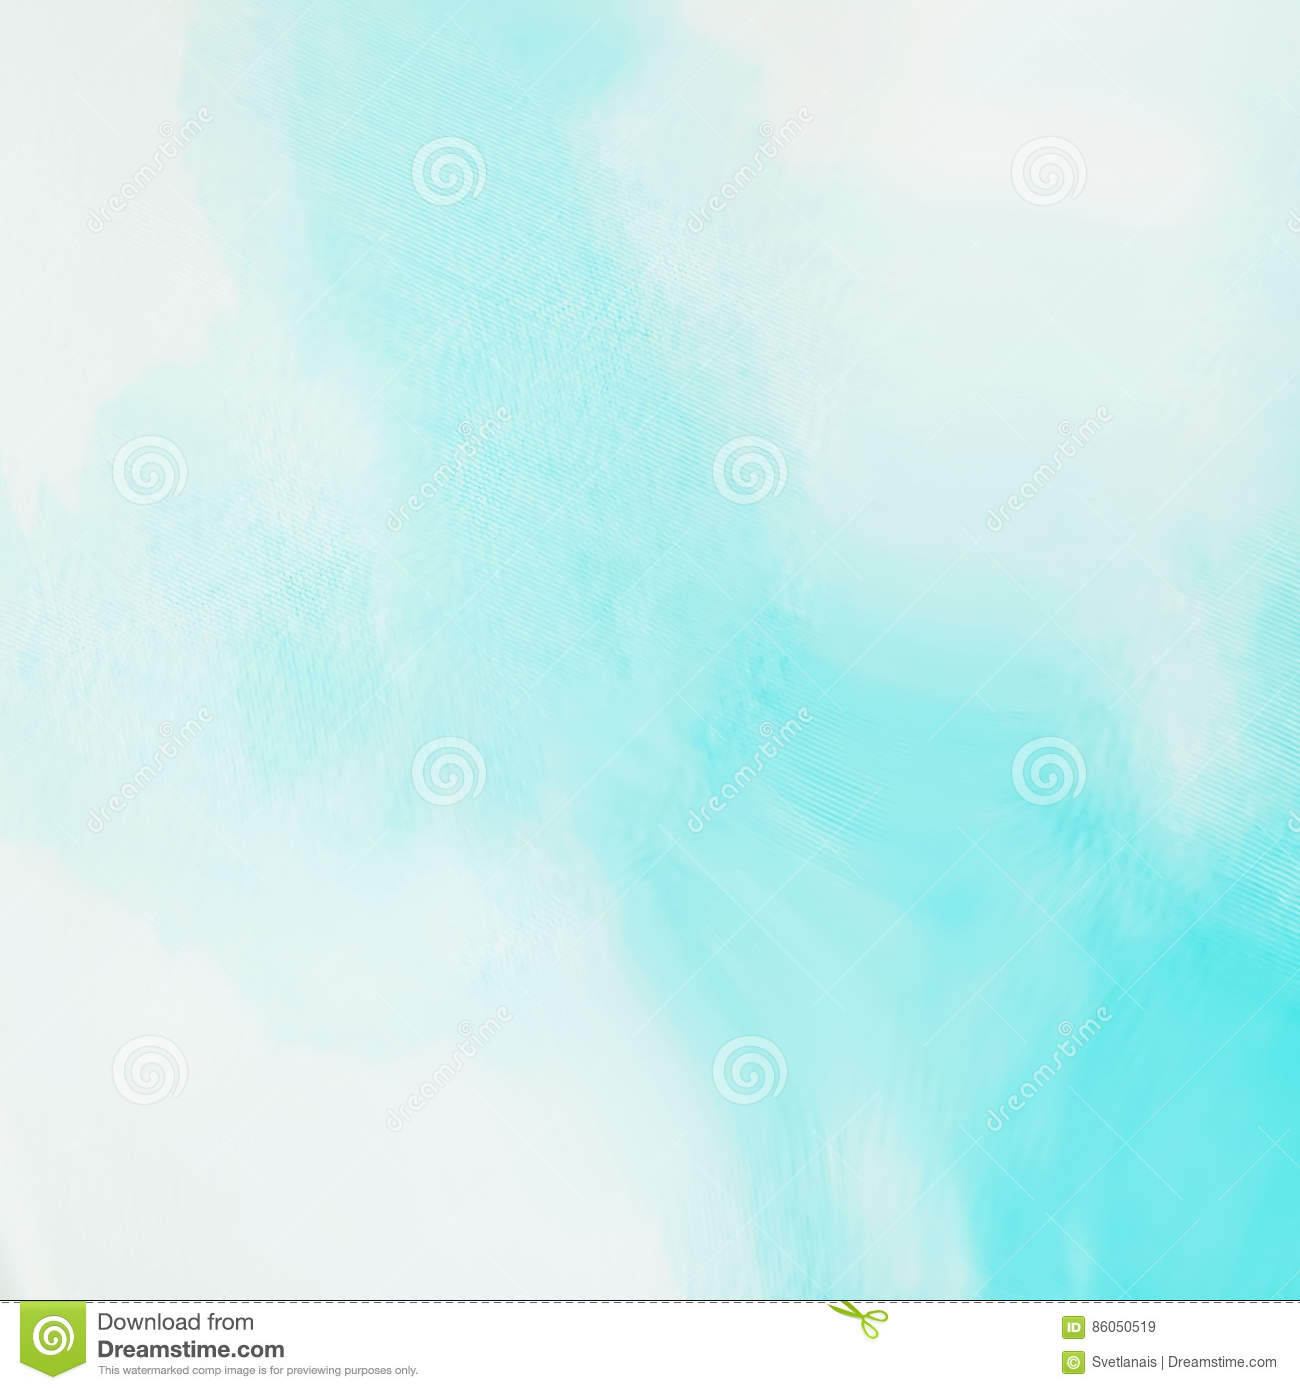 Blue Modern Wallpaper Texture White And Blue Abstract With Blurred Texture Silk For